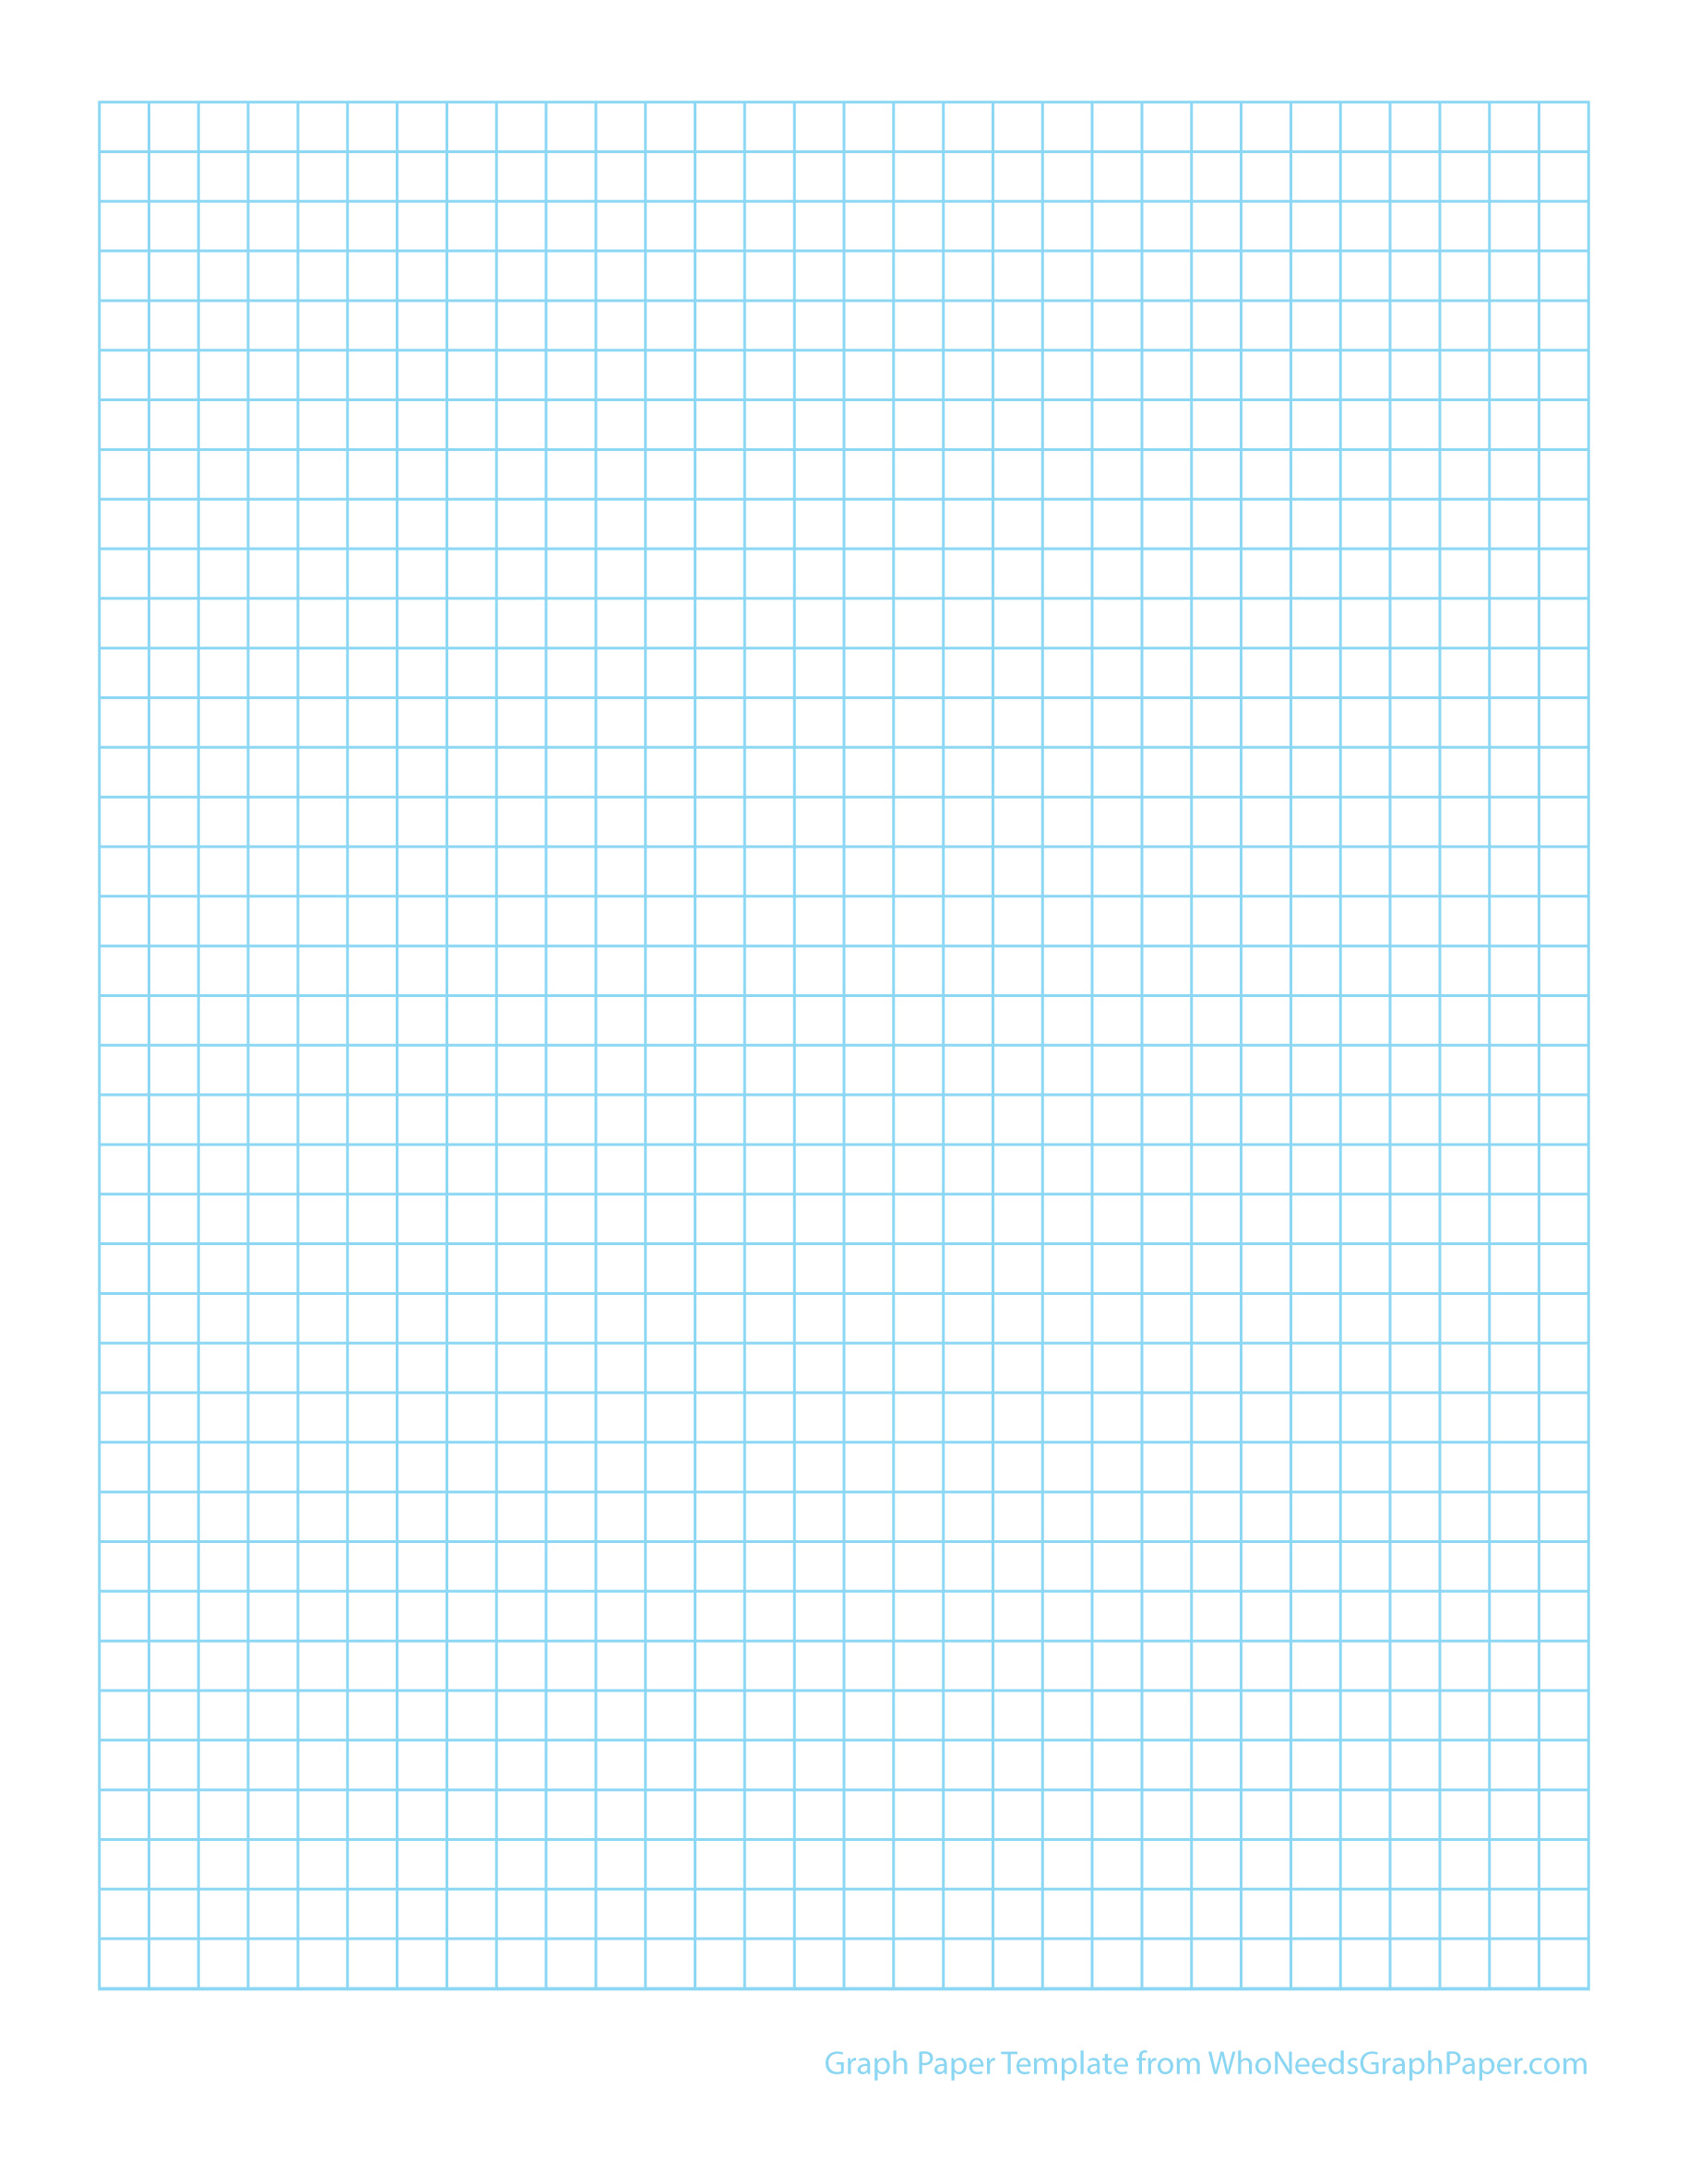 Download A Free Isometric Graph Paper Template In Excel. Four Sizes  Included .15 Inches To 1 Inch. Adjust The Color Or Size Quickly.  Instructions Included.